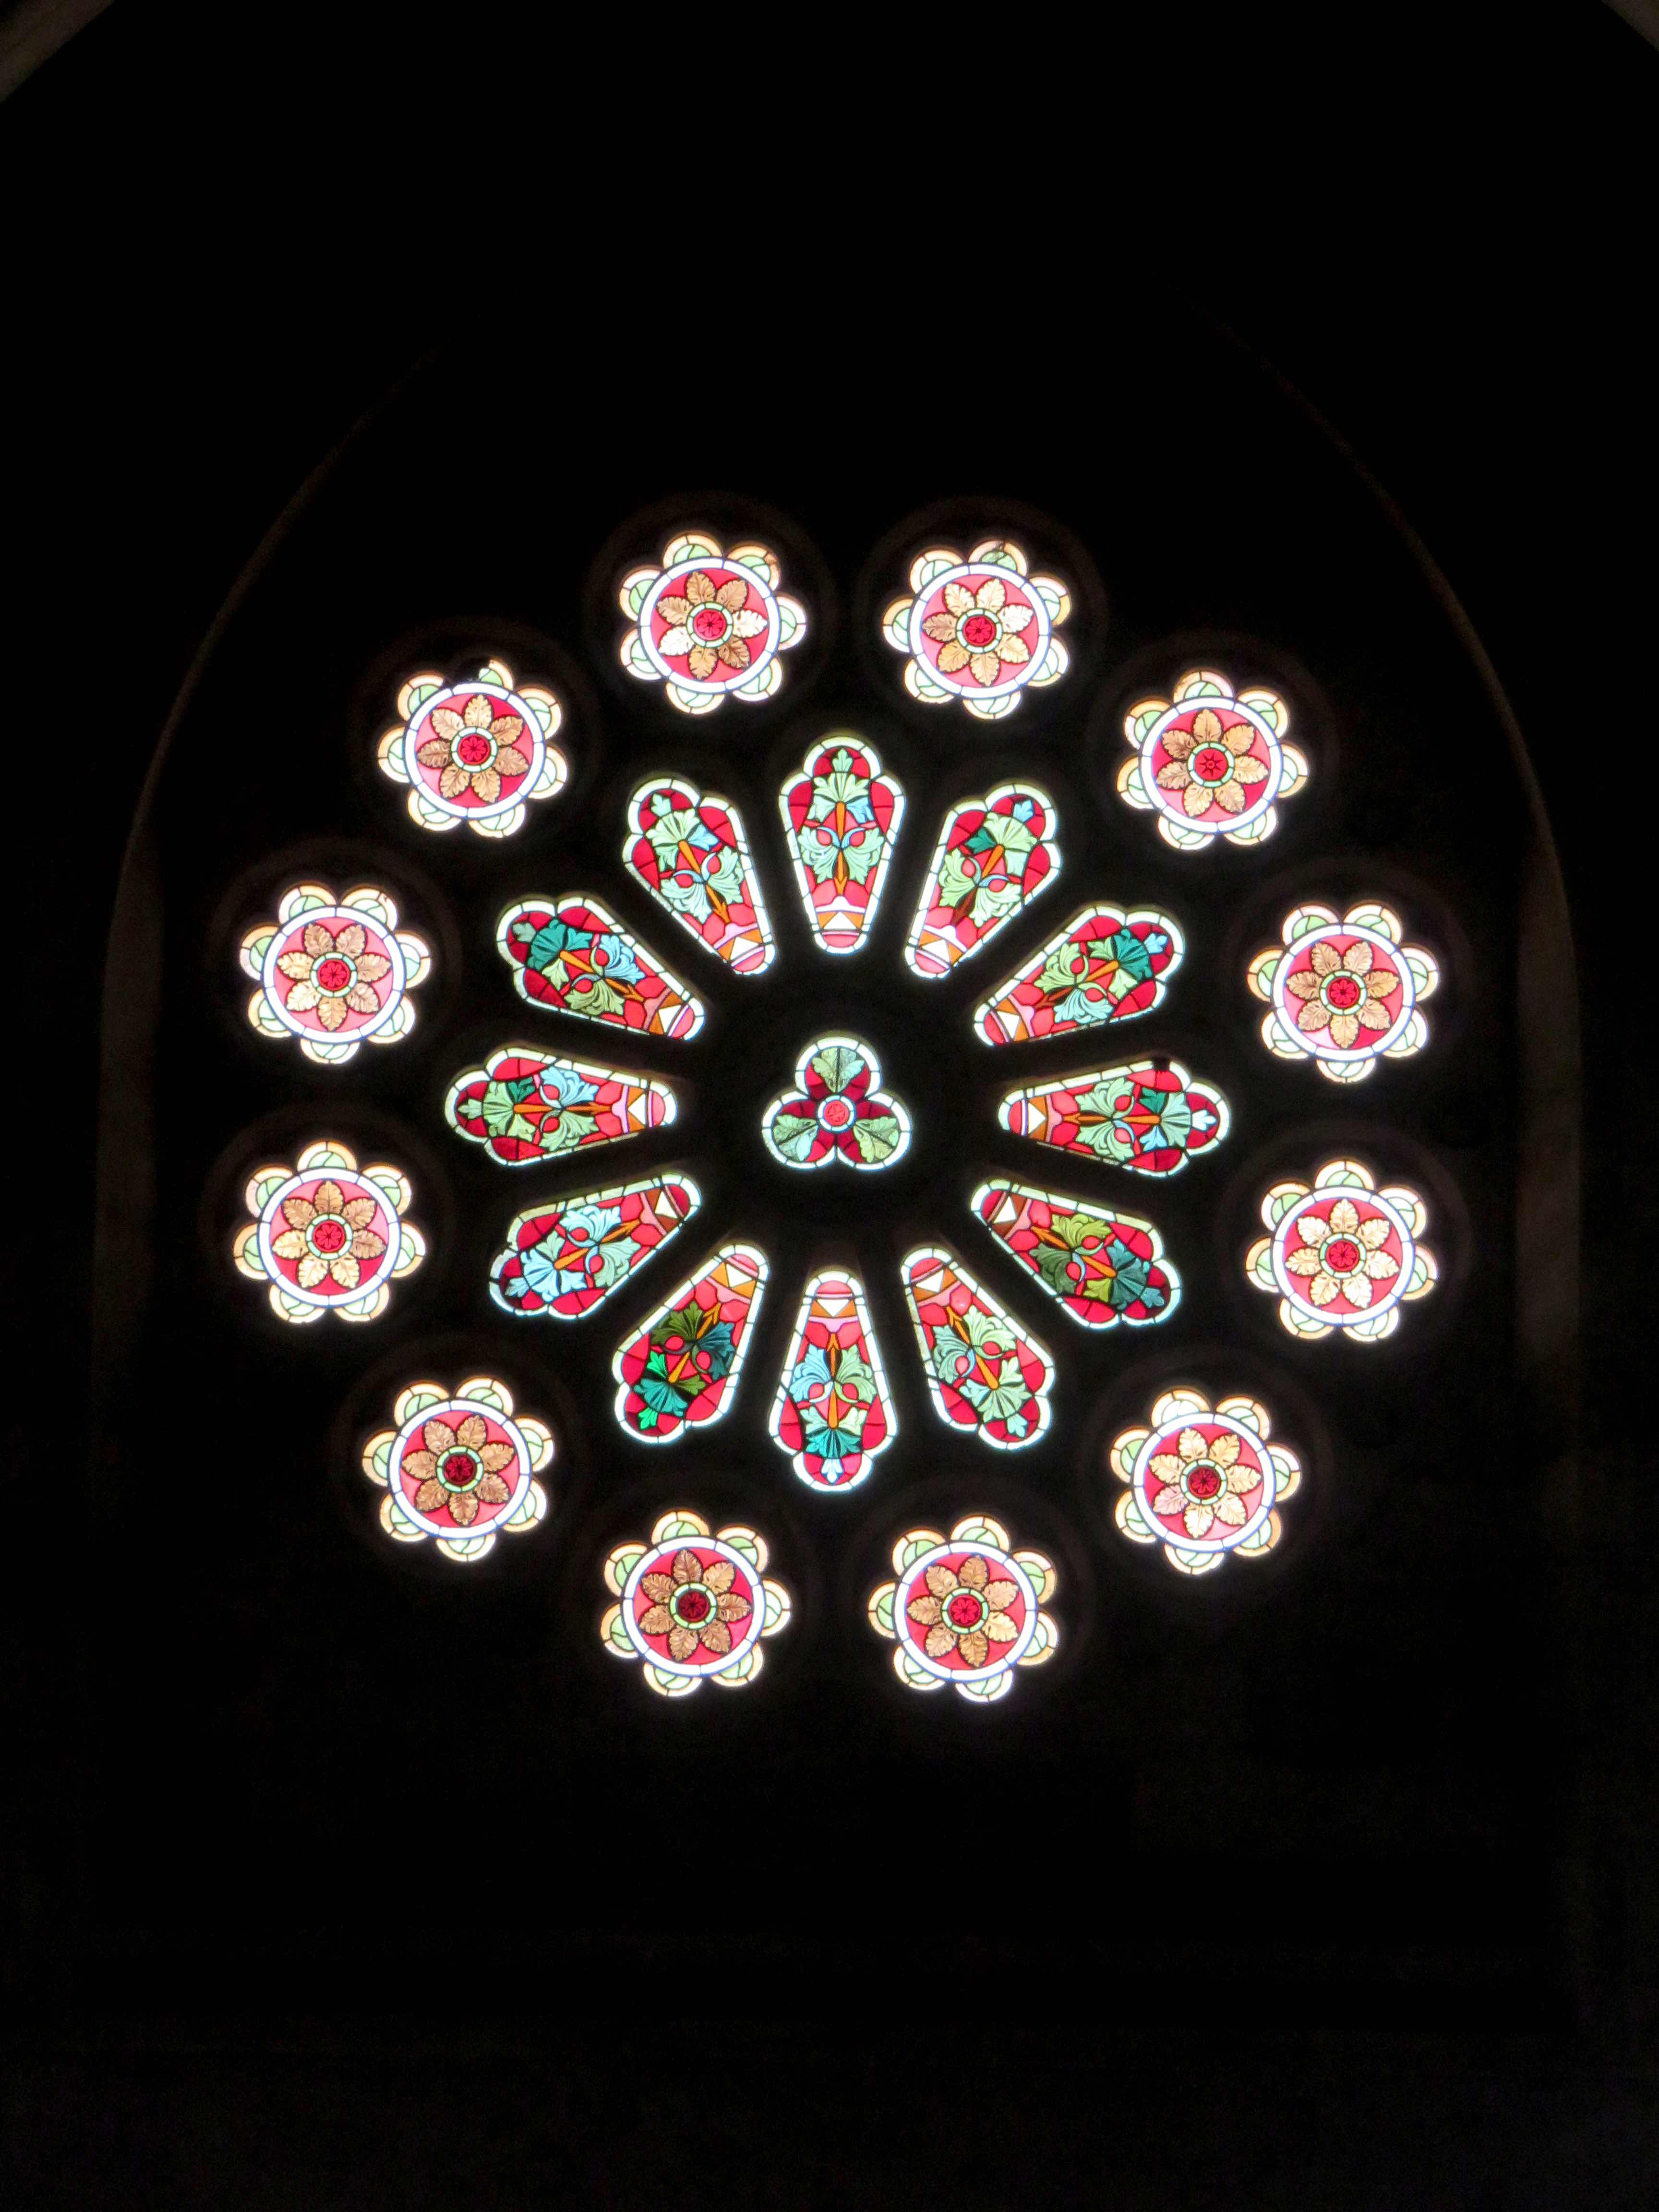 rose stained glass